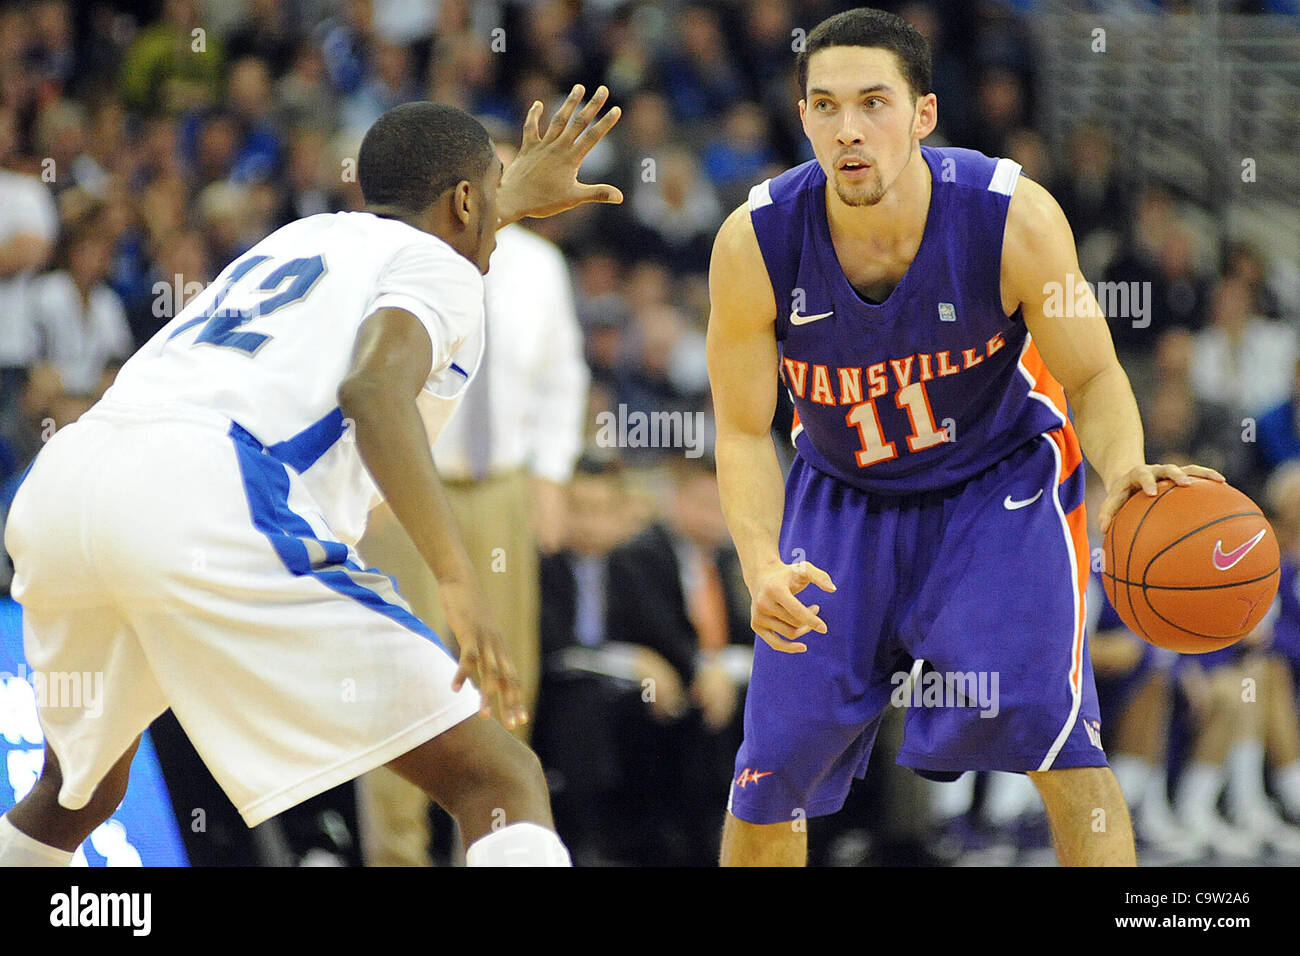 Feb. 21, 2012 - Omaha, Nebraska, U.S - Creighton guard Jahenns Manigat (12) could not stop Evansville guard Colt - Stock Image